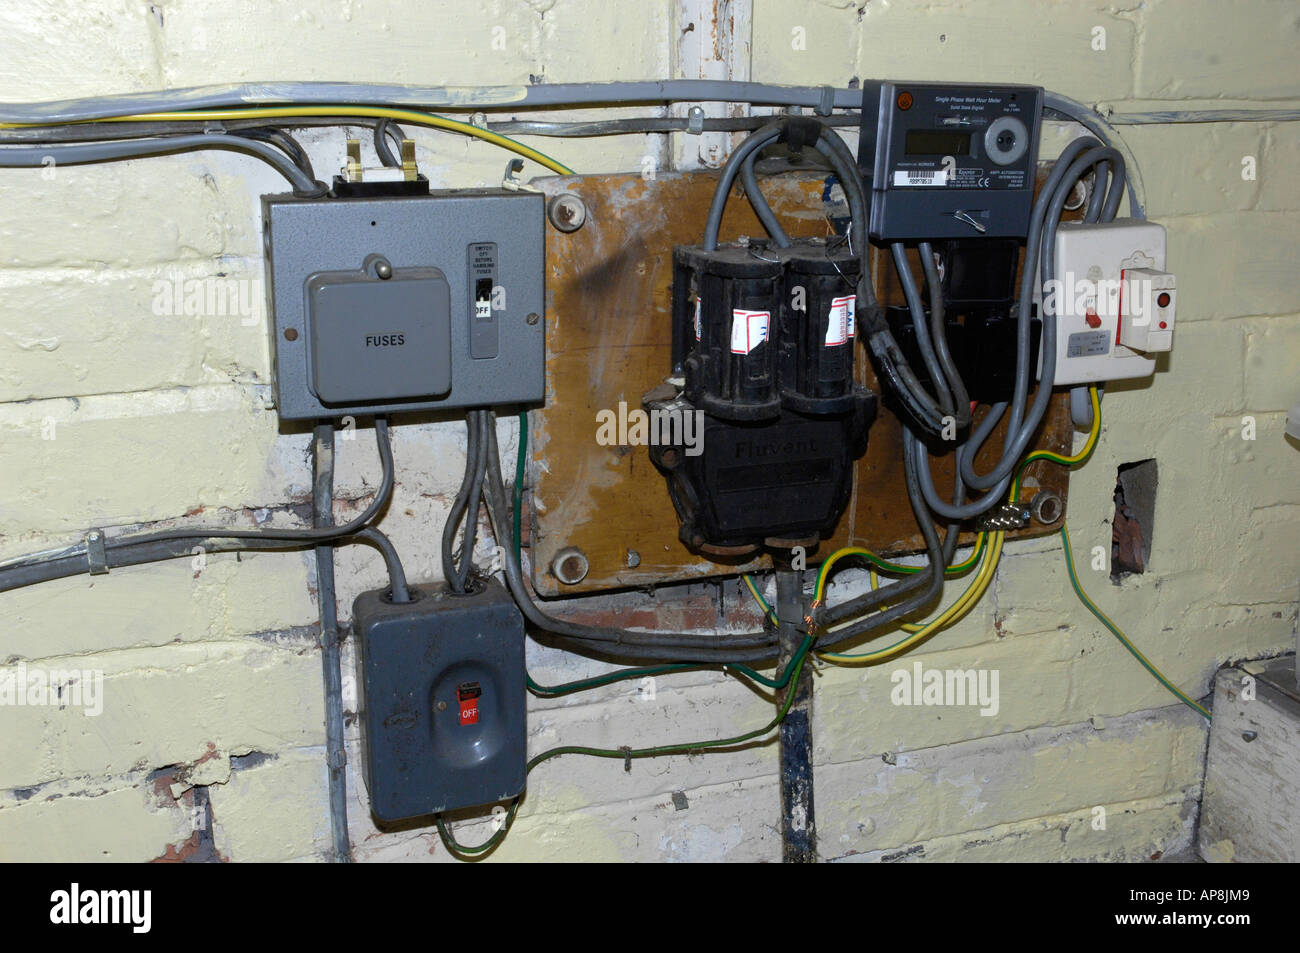 fuse box electrical old electrical fuse box stock photo royalty image 8977864 old electrical fuse box